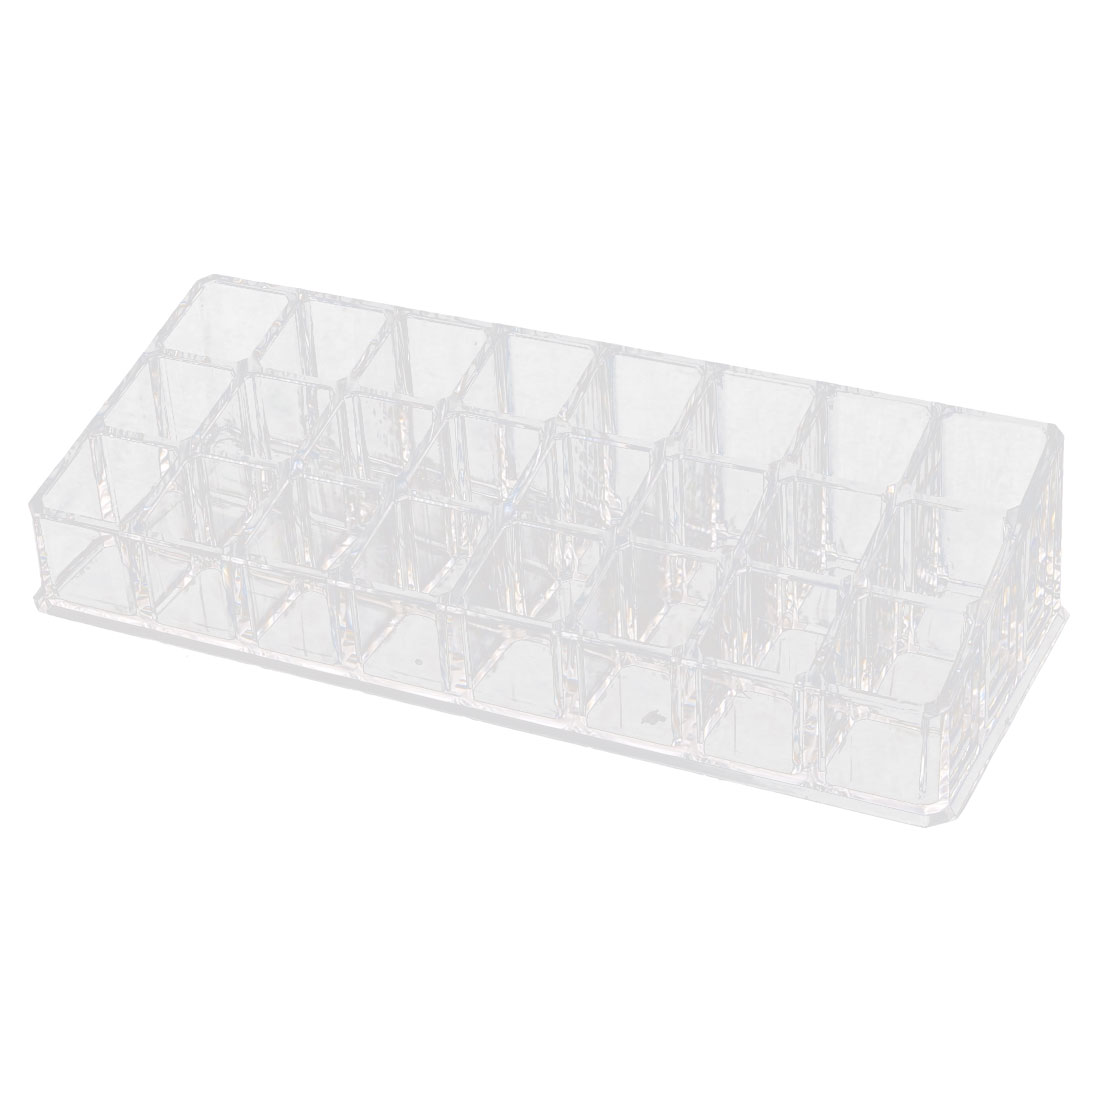 Acrylic 24 Slots Lipstick Toiletry Tool Container Jewelry Box Organizer Clear